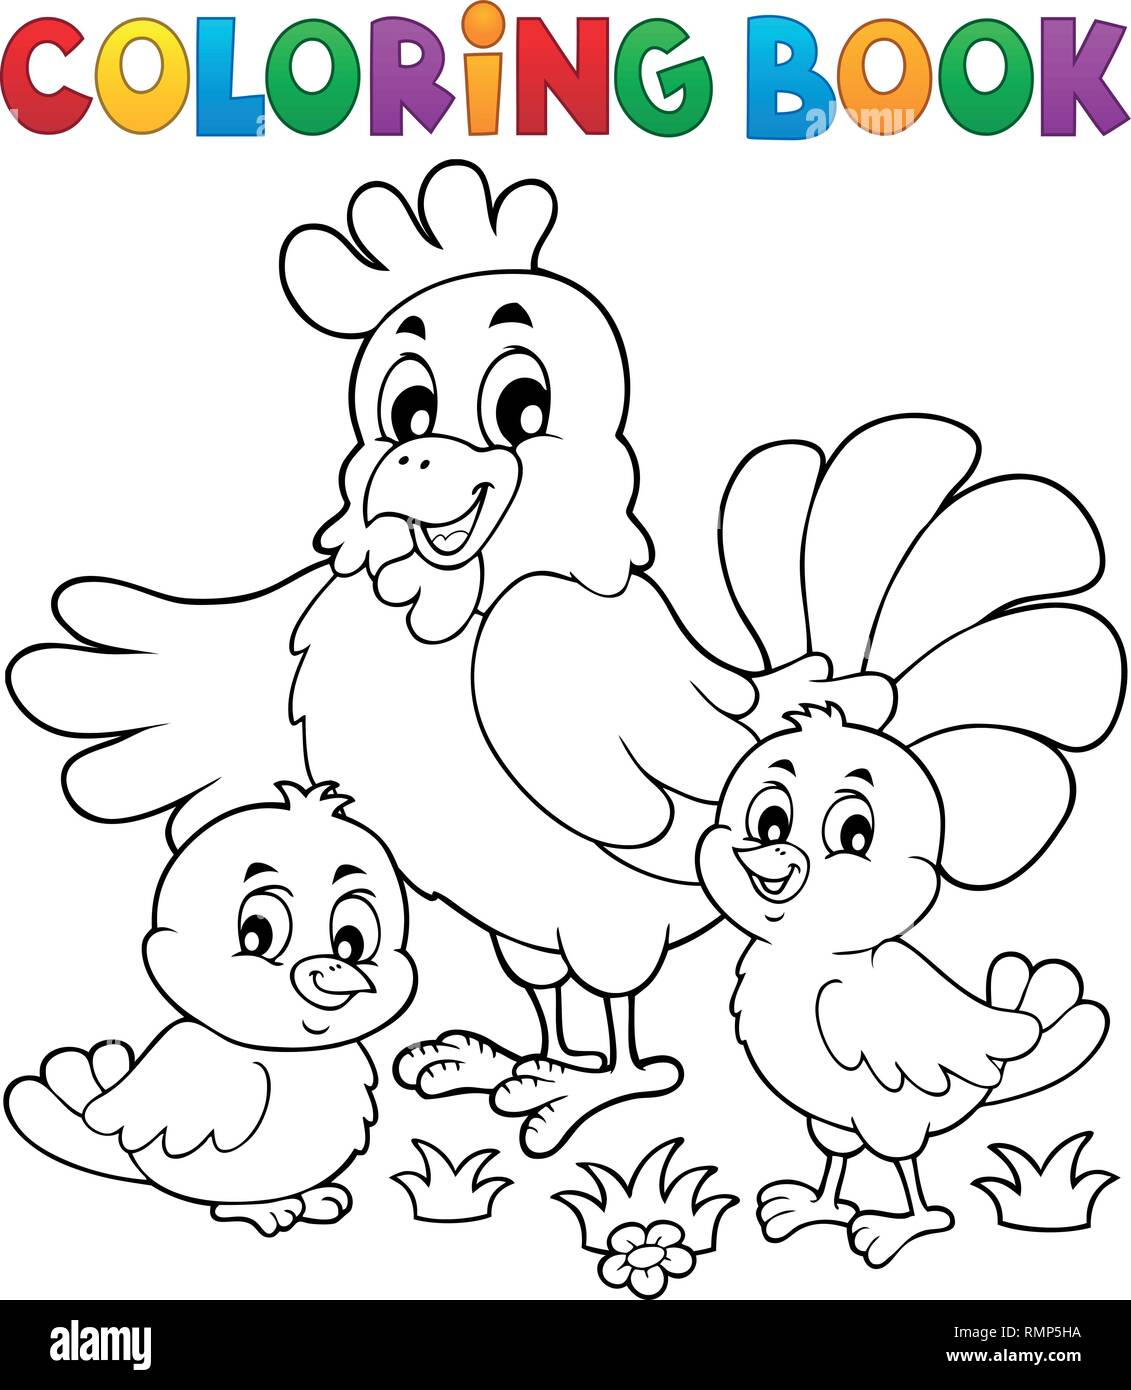 Coloring book chickens and hen theme 1 - eps10 vector ...